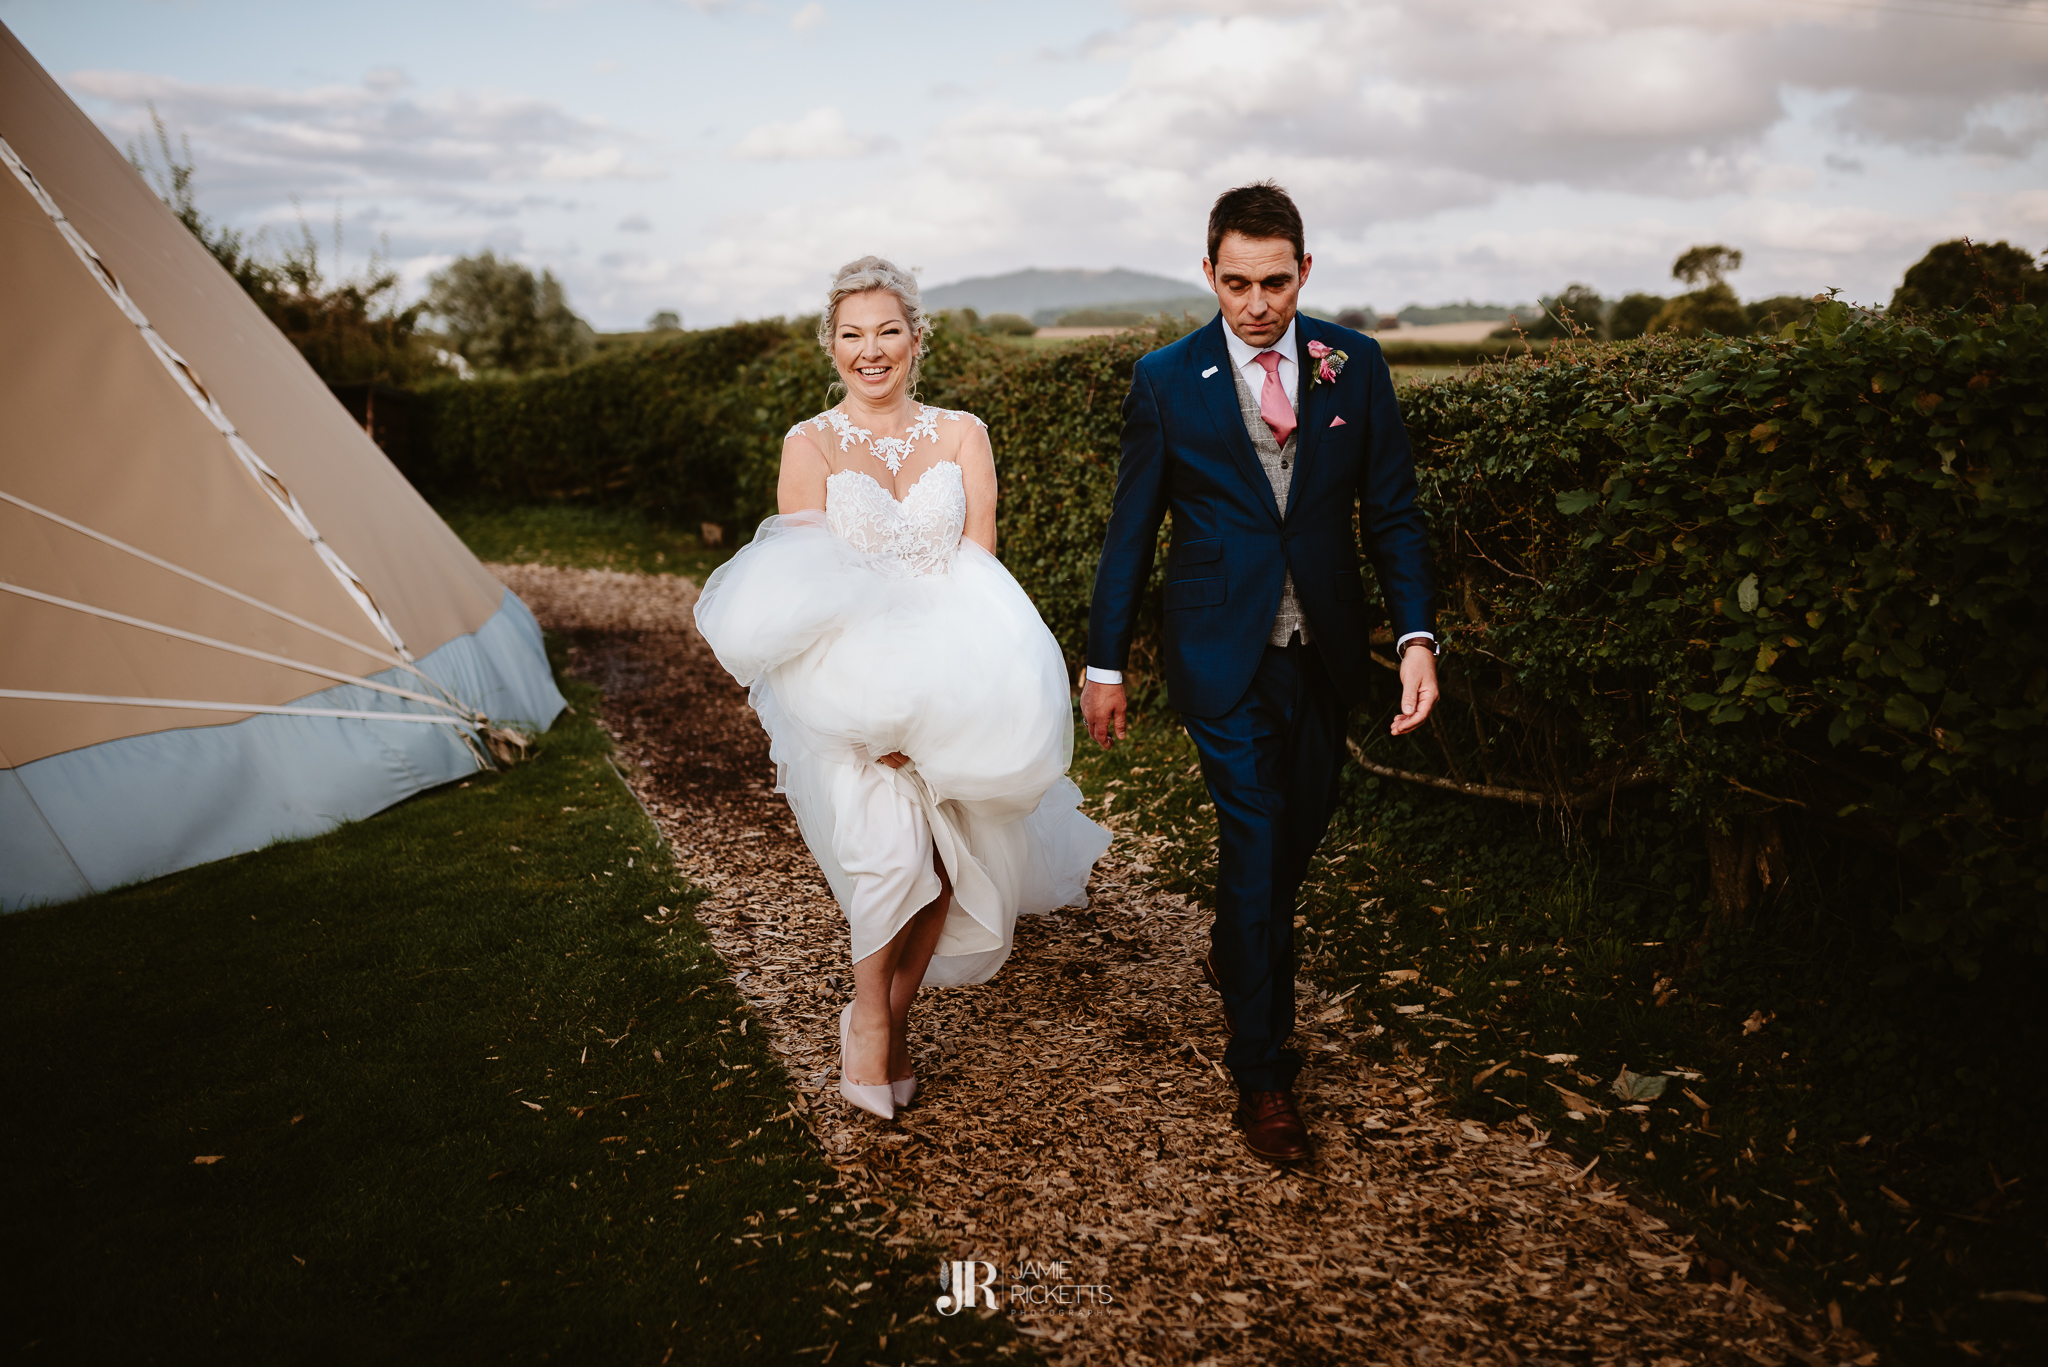 Wroxeter-Hotel-Wedding-Photography-In-Shropshire-By-Shropshire-Wedding-Photographer-Jamie-Ricketts-202.JPG